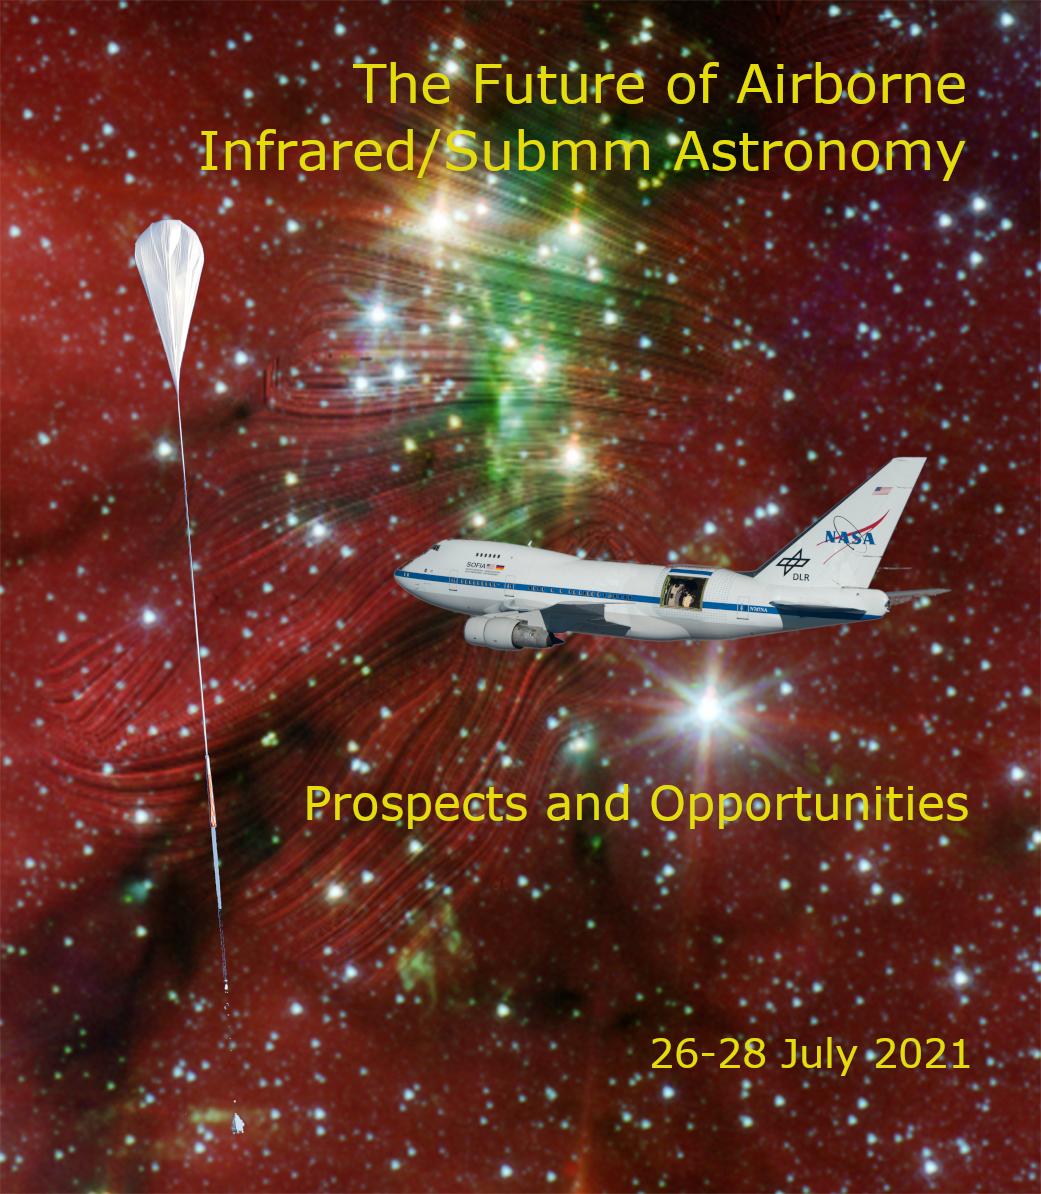 The Future of Airborne Infrared/Submm Astronomy